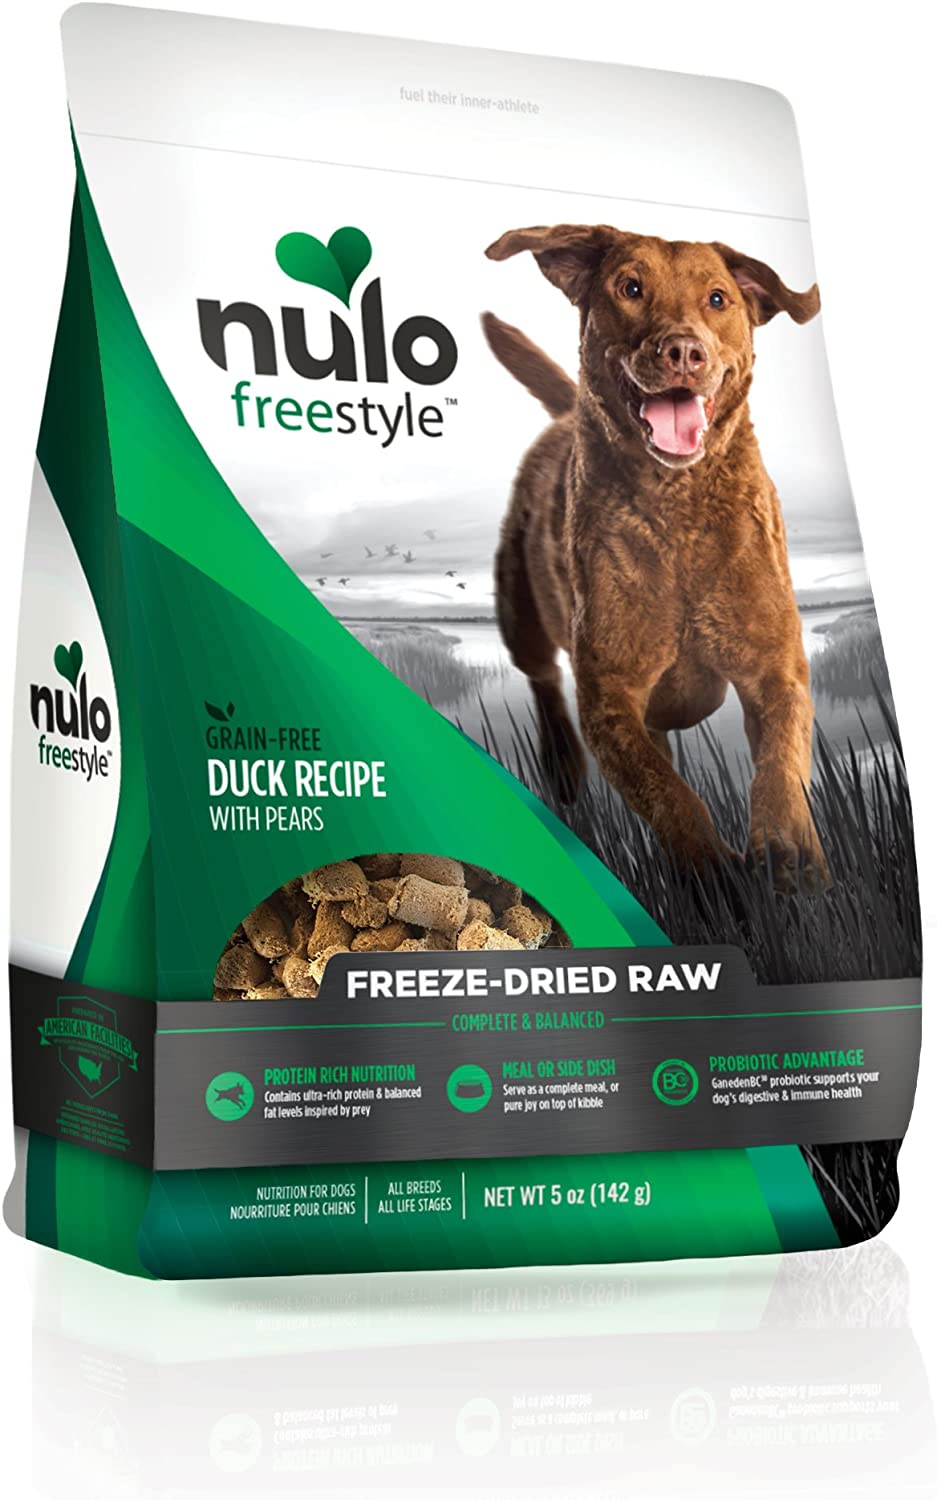 Nulo Freeze Dried Raw Dog Food For All Ages & Breeds: Natural Grain Free Formula With Ganedenbc30 Probiotics For Digestive & Immune Health - Duck Recipe With Pears - 5 Oz Bag